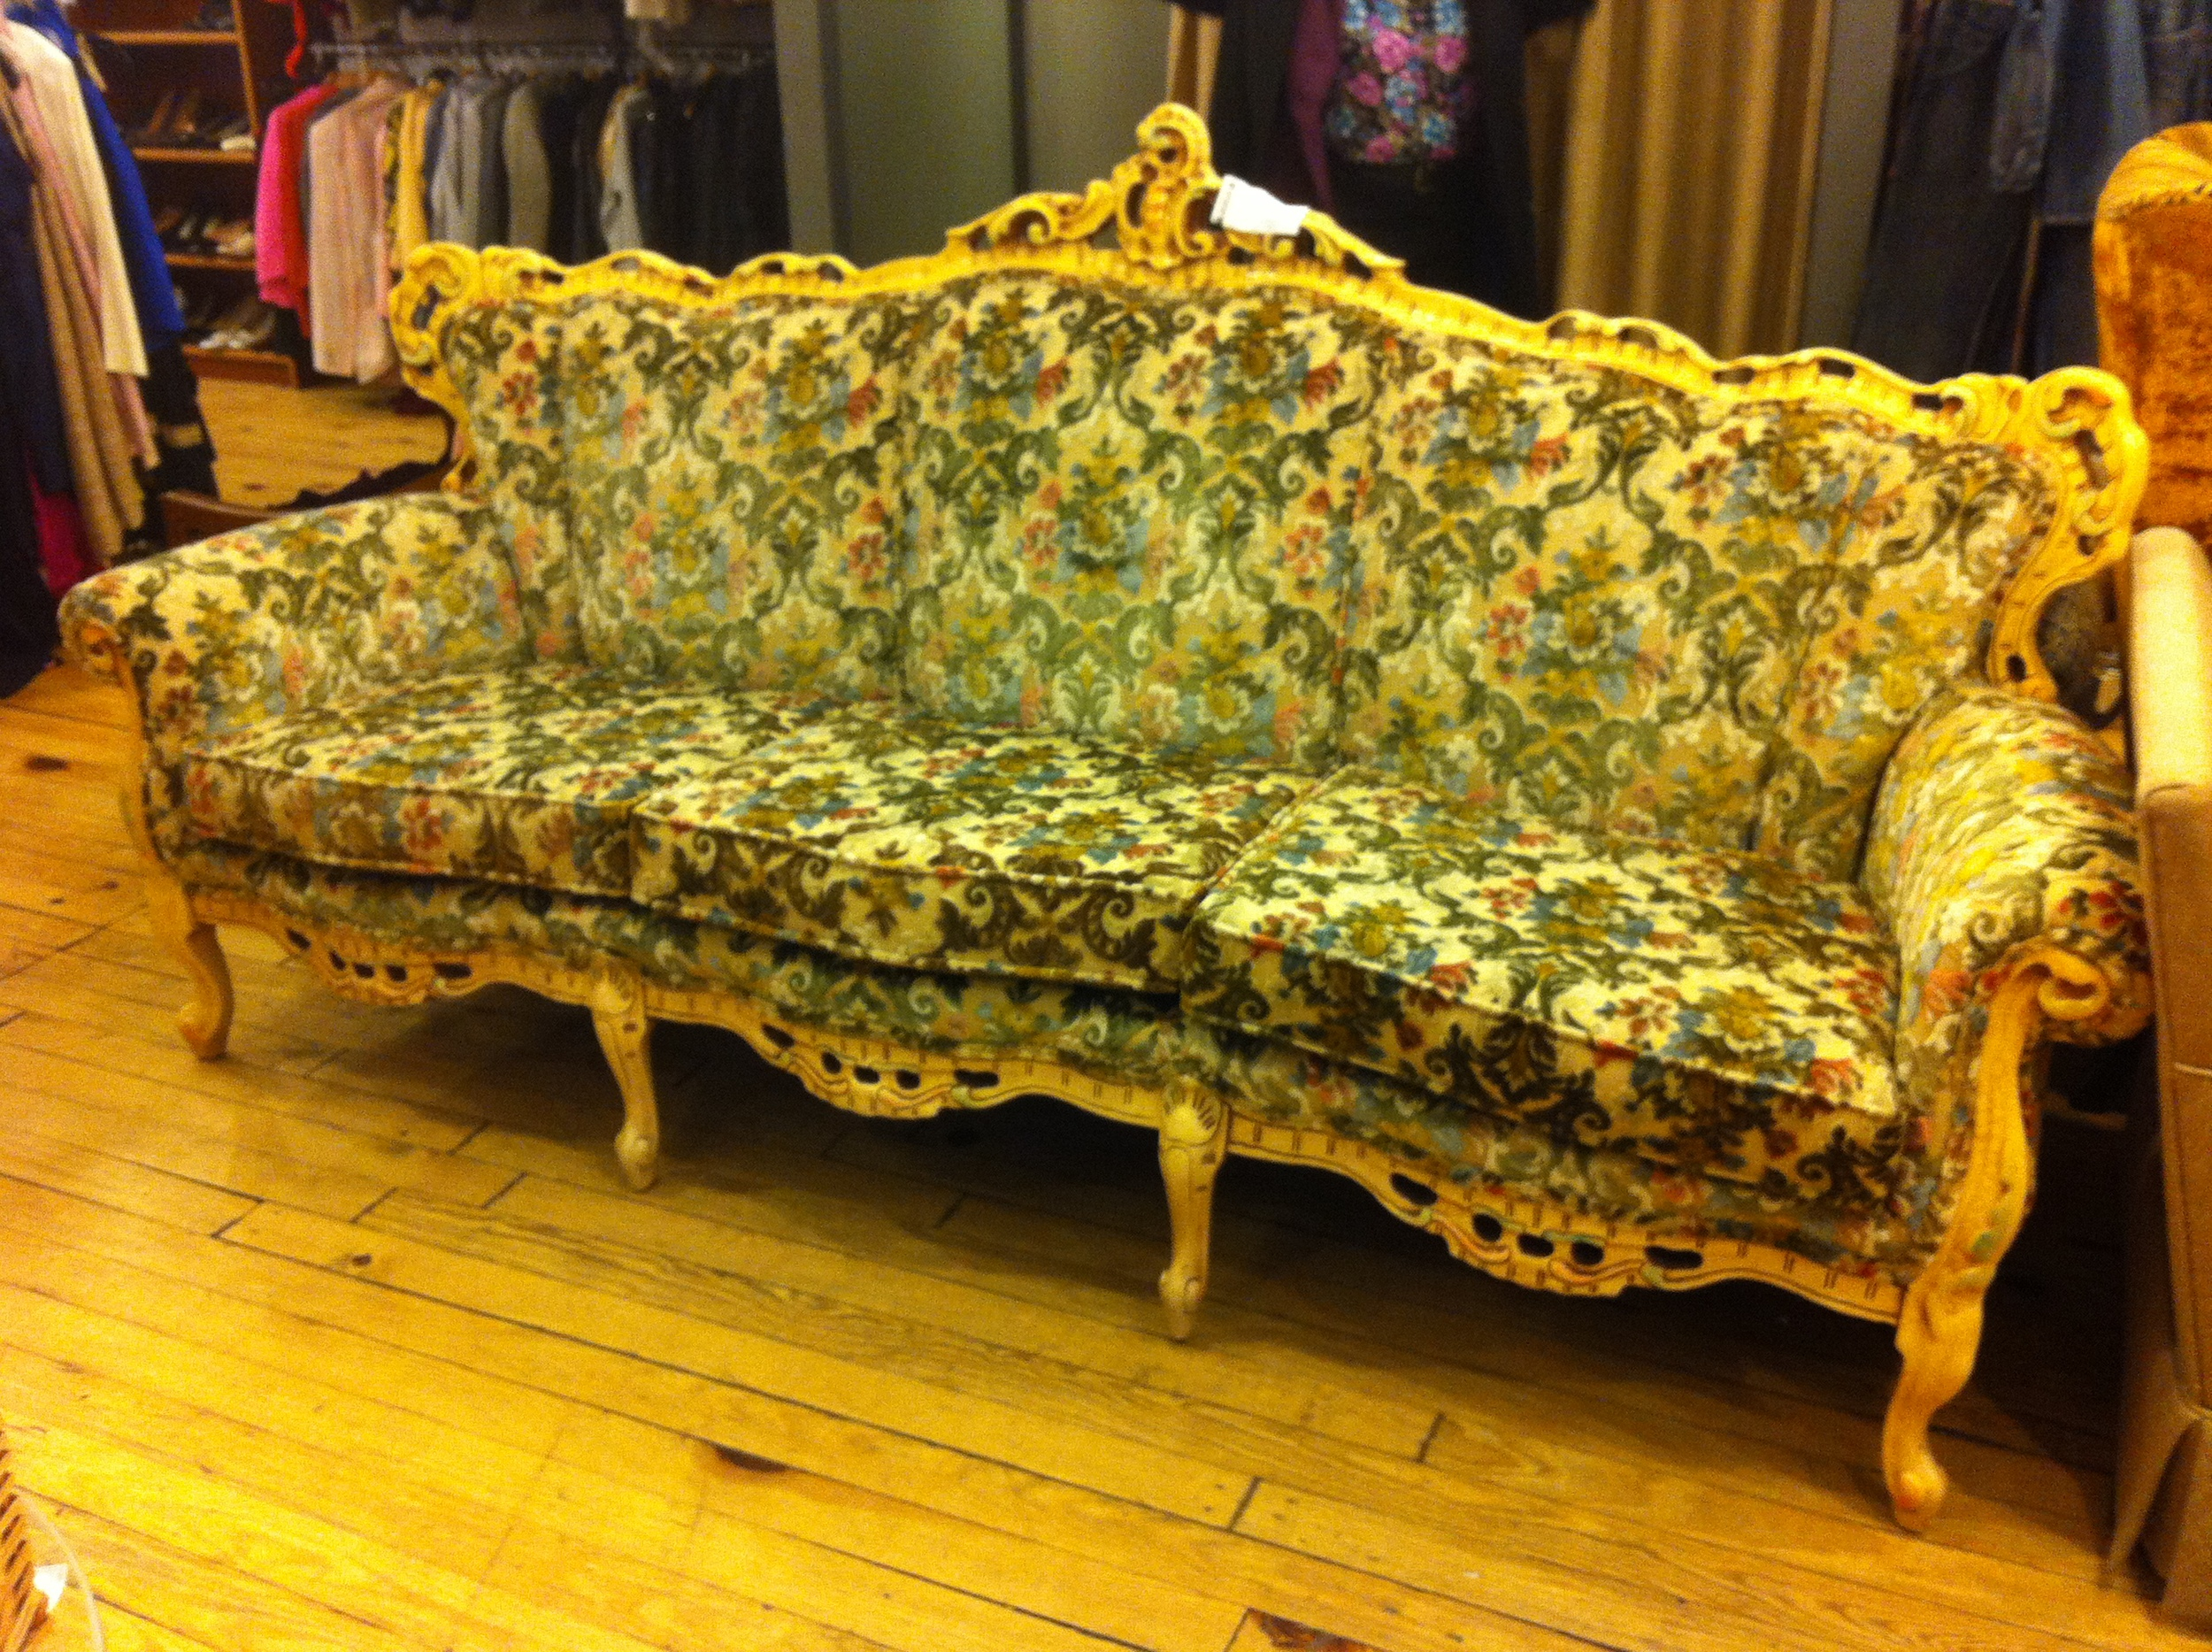 A pic of an ornate, Rococo style sofa at Housing Works